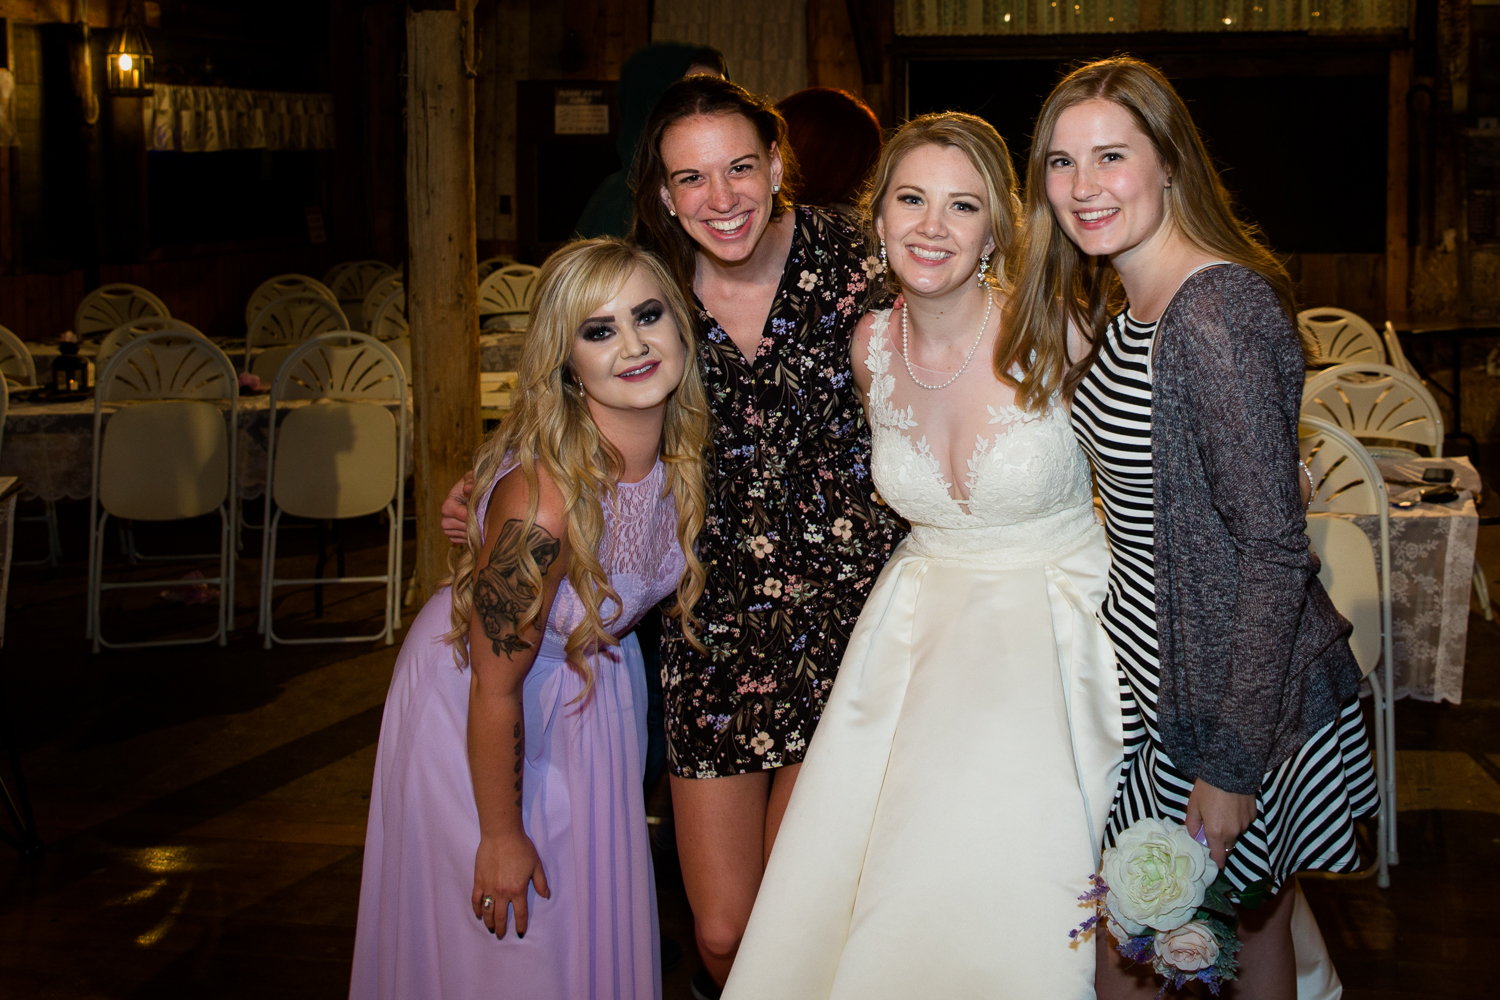 Danielle and Eric's Wedding with Chantal and Amber - June 2